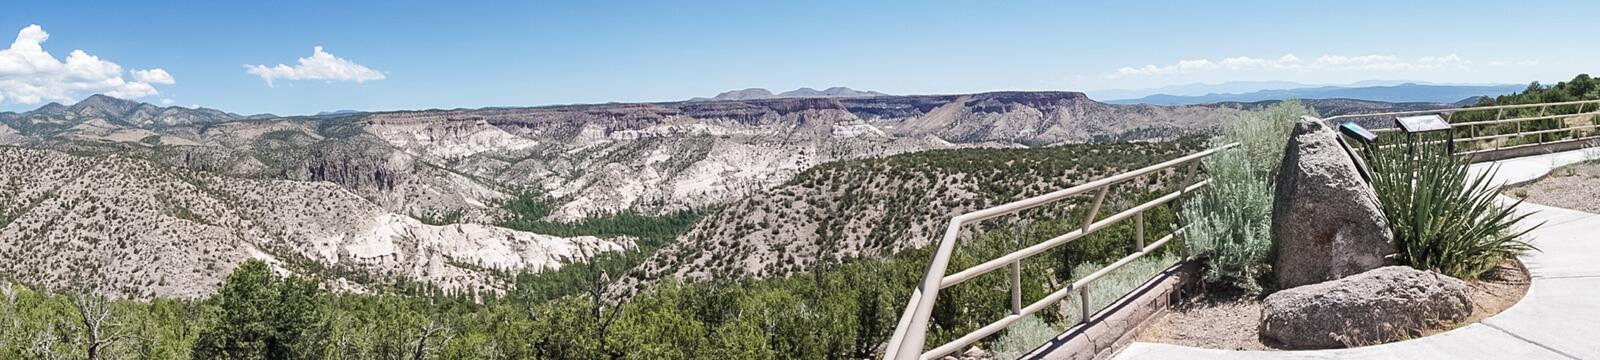 A Panoramic View of the top of the Tent Rocks National Monument. A Scenic Panoramic View of the top of the Tent Rocks National Monument near Cochiti, New Mexico royalty free stock photos